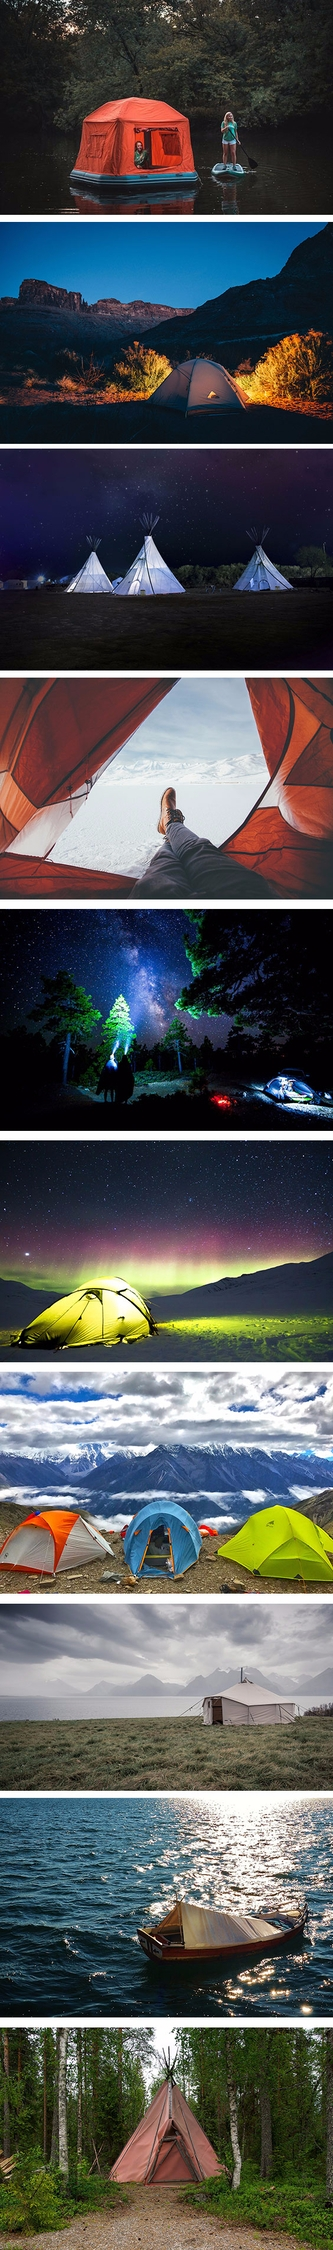 Awesome tents - adventure,, backcountry, - adaptnetwork   ello